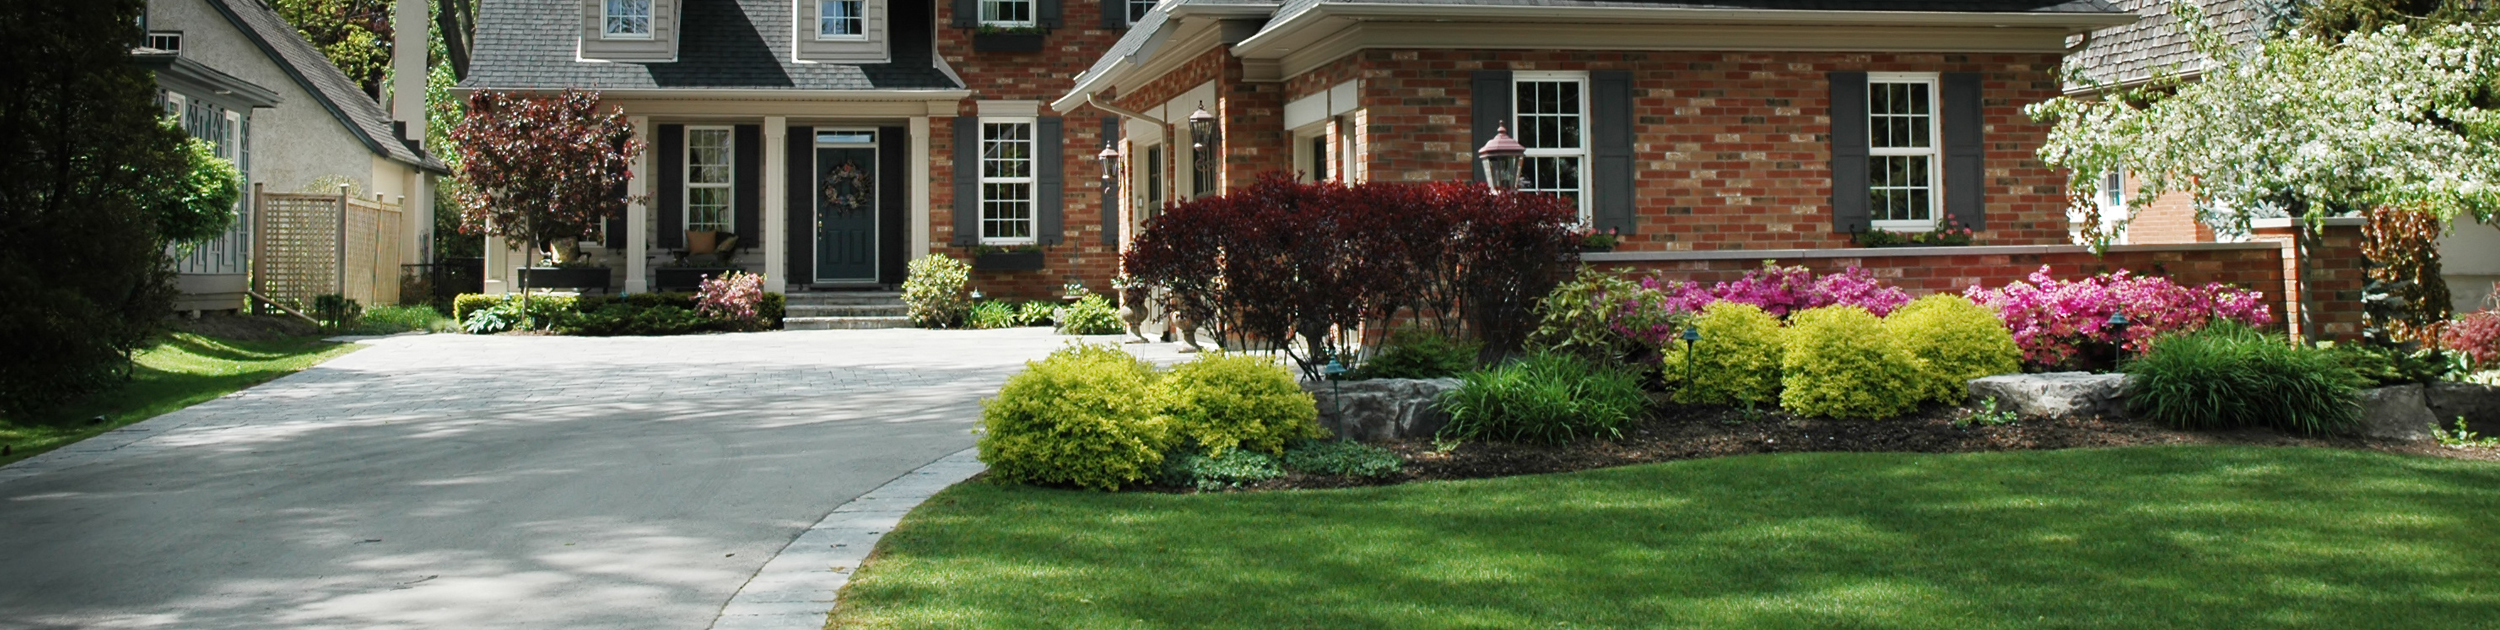 luxury home with Spring bushes blooming outside